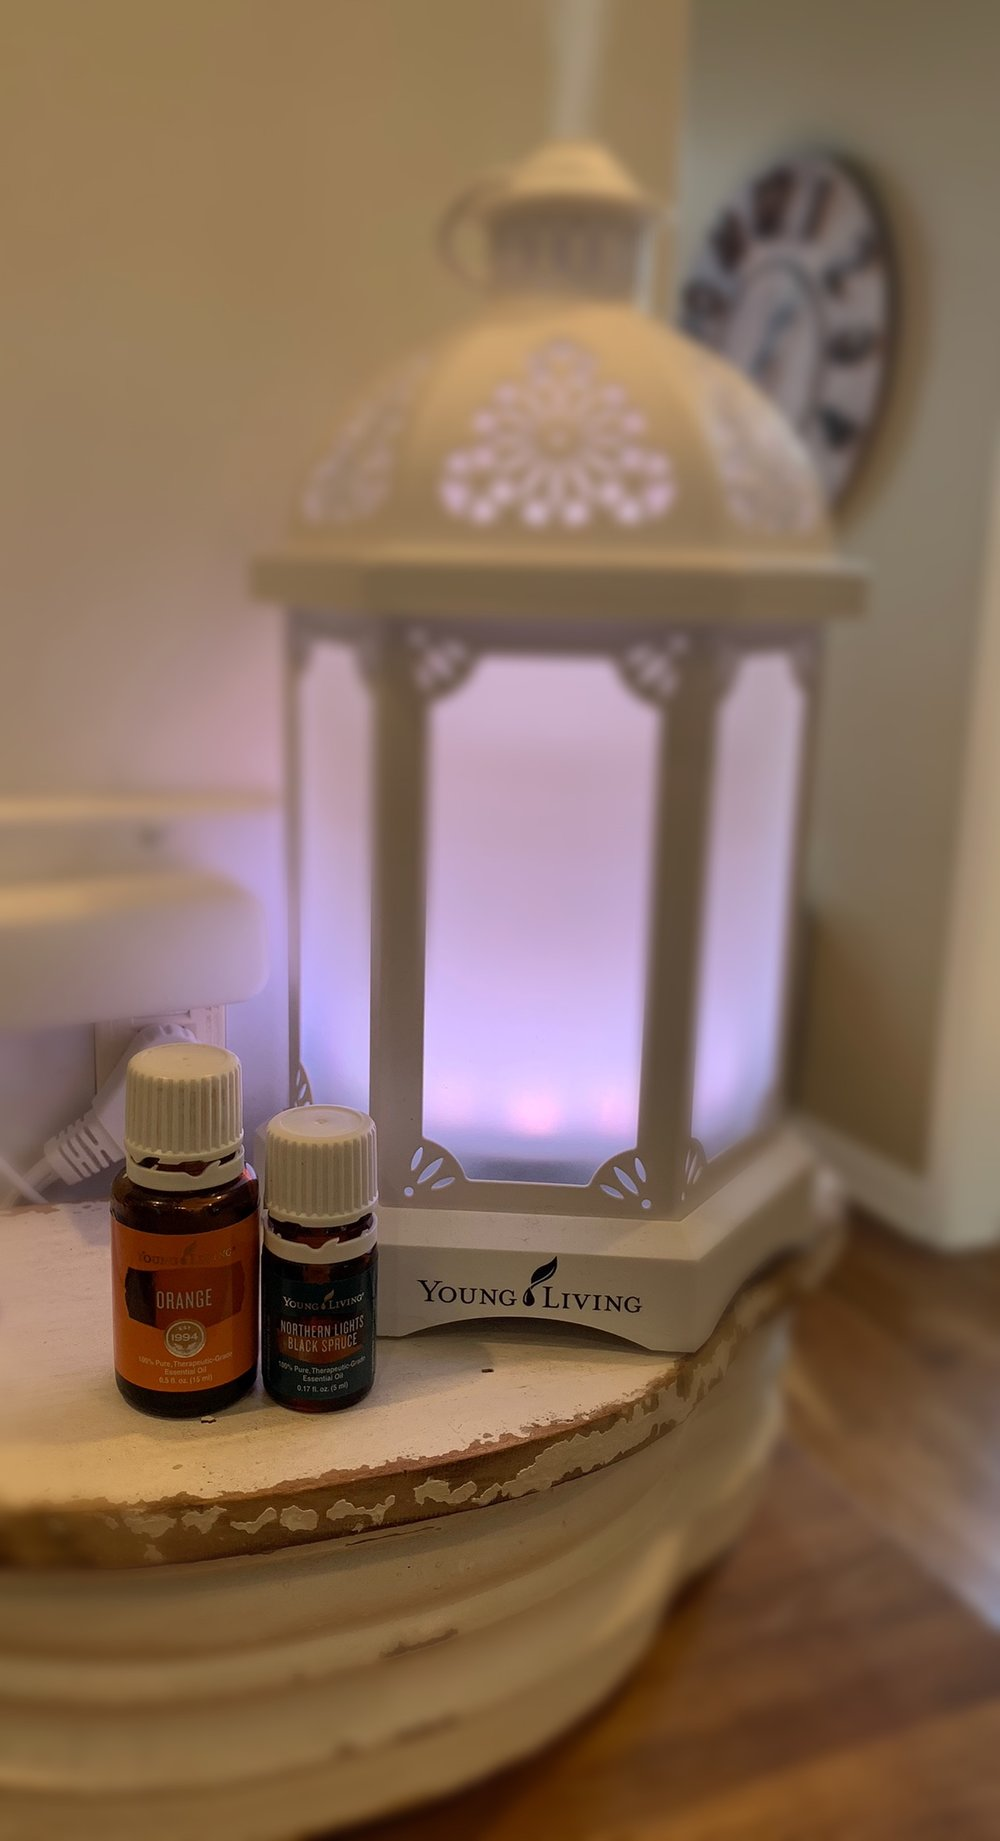 Current Diffuser Love: Northern Lights Black Spruce + Orange. Treat yourself to this little slice of heaven.